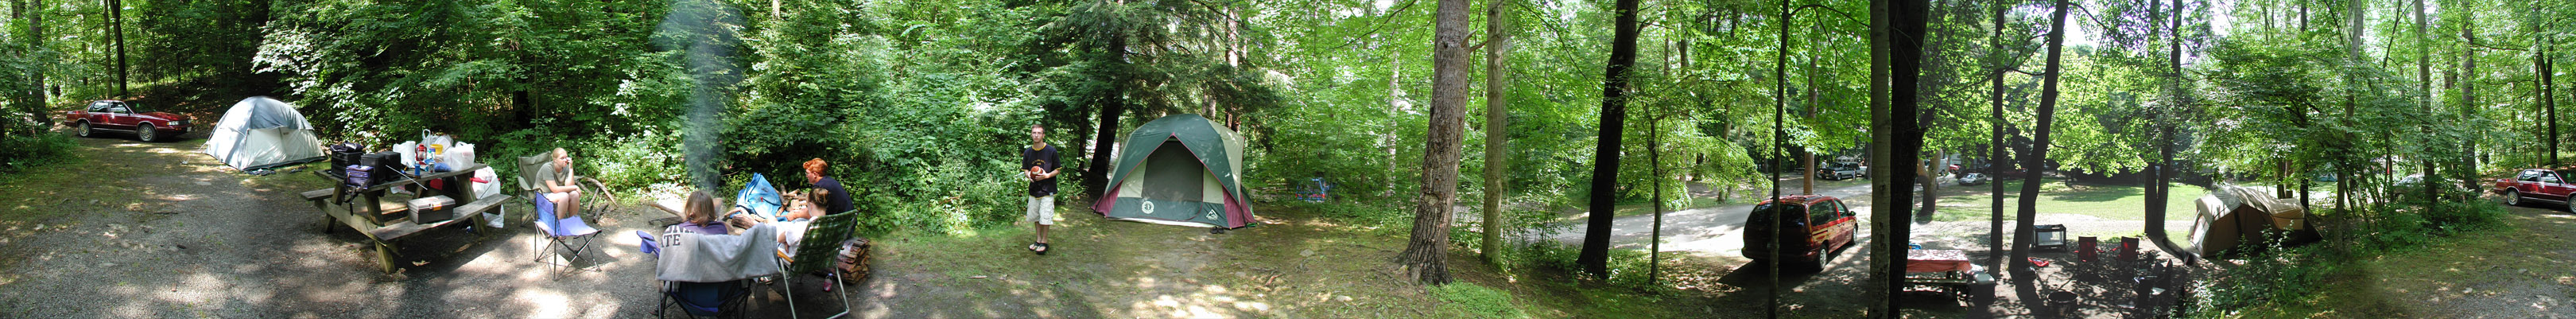 This campsite maintained by Gaylord RealEstate